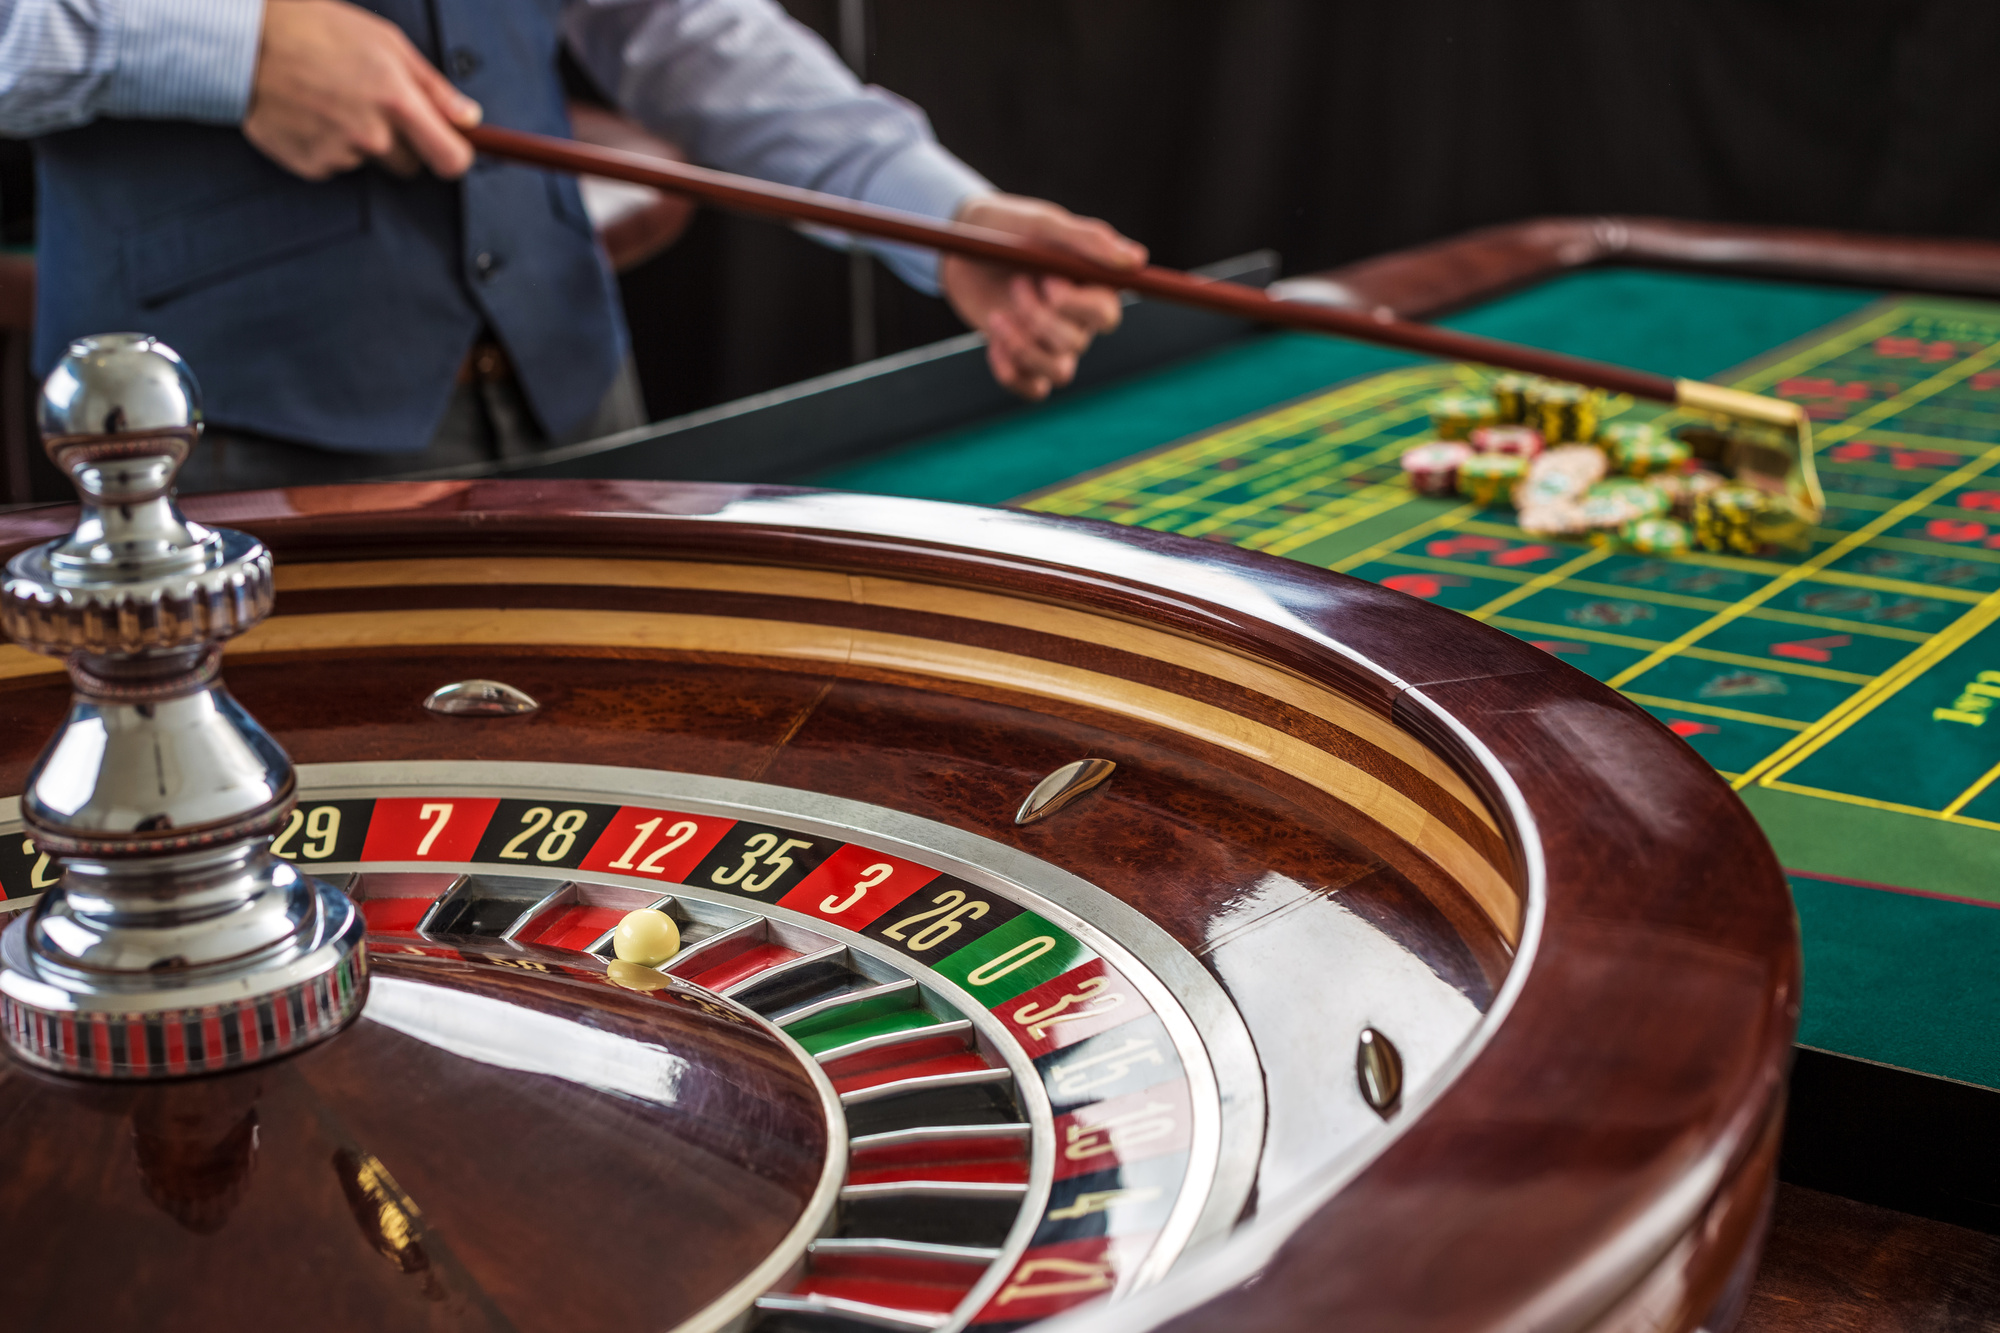 Which Casino Games Have The Best Odds (And The Worst Odds)?